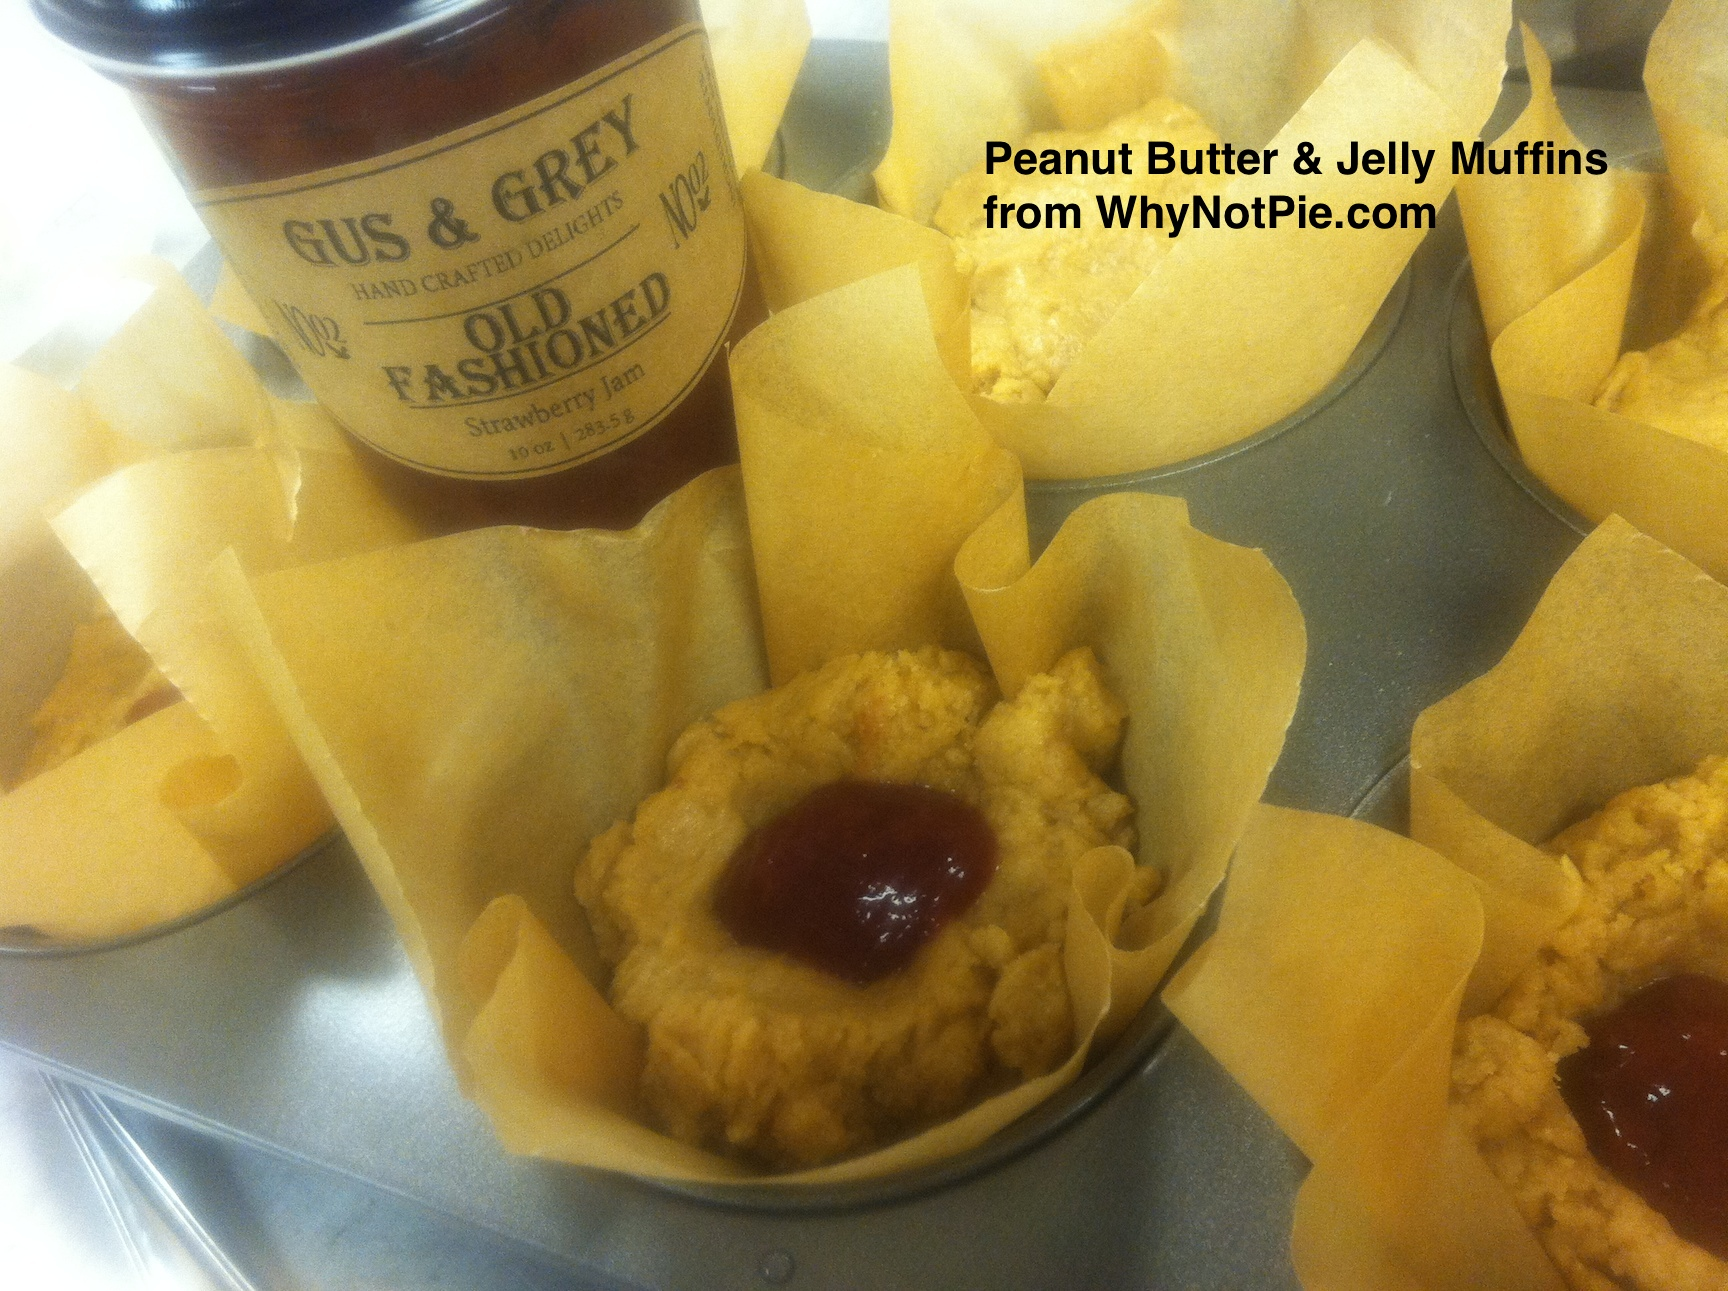 PB & J Muffins with Gus & Grey Strawberry Jam